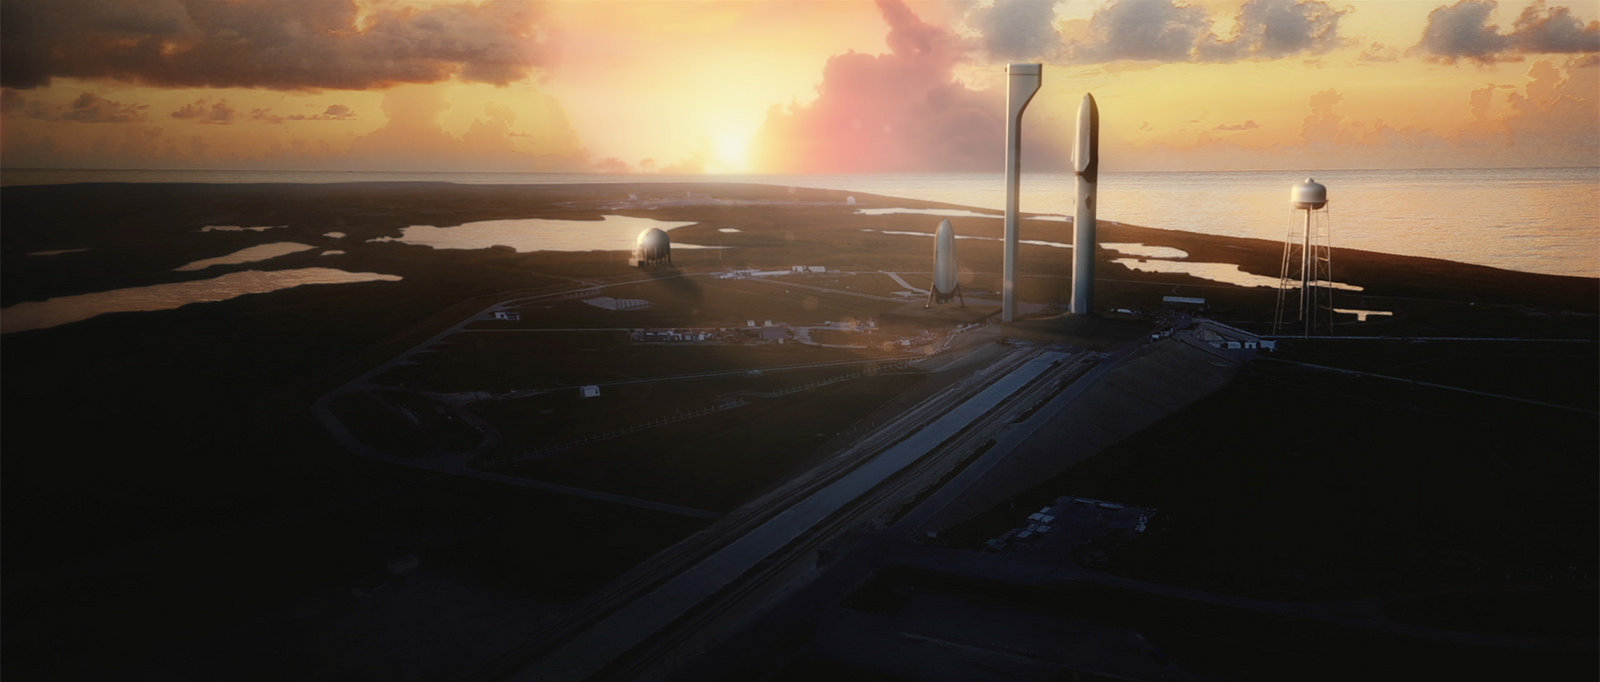 Concept of SpaceX's Interplanetary Transport System at Launch Complex 39A.